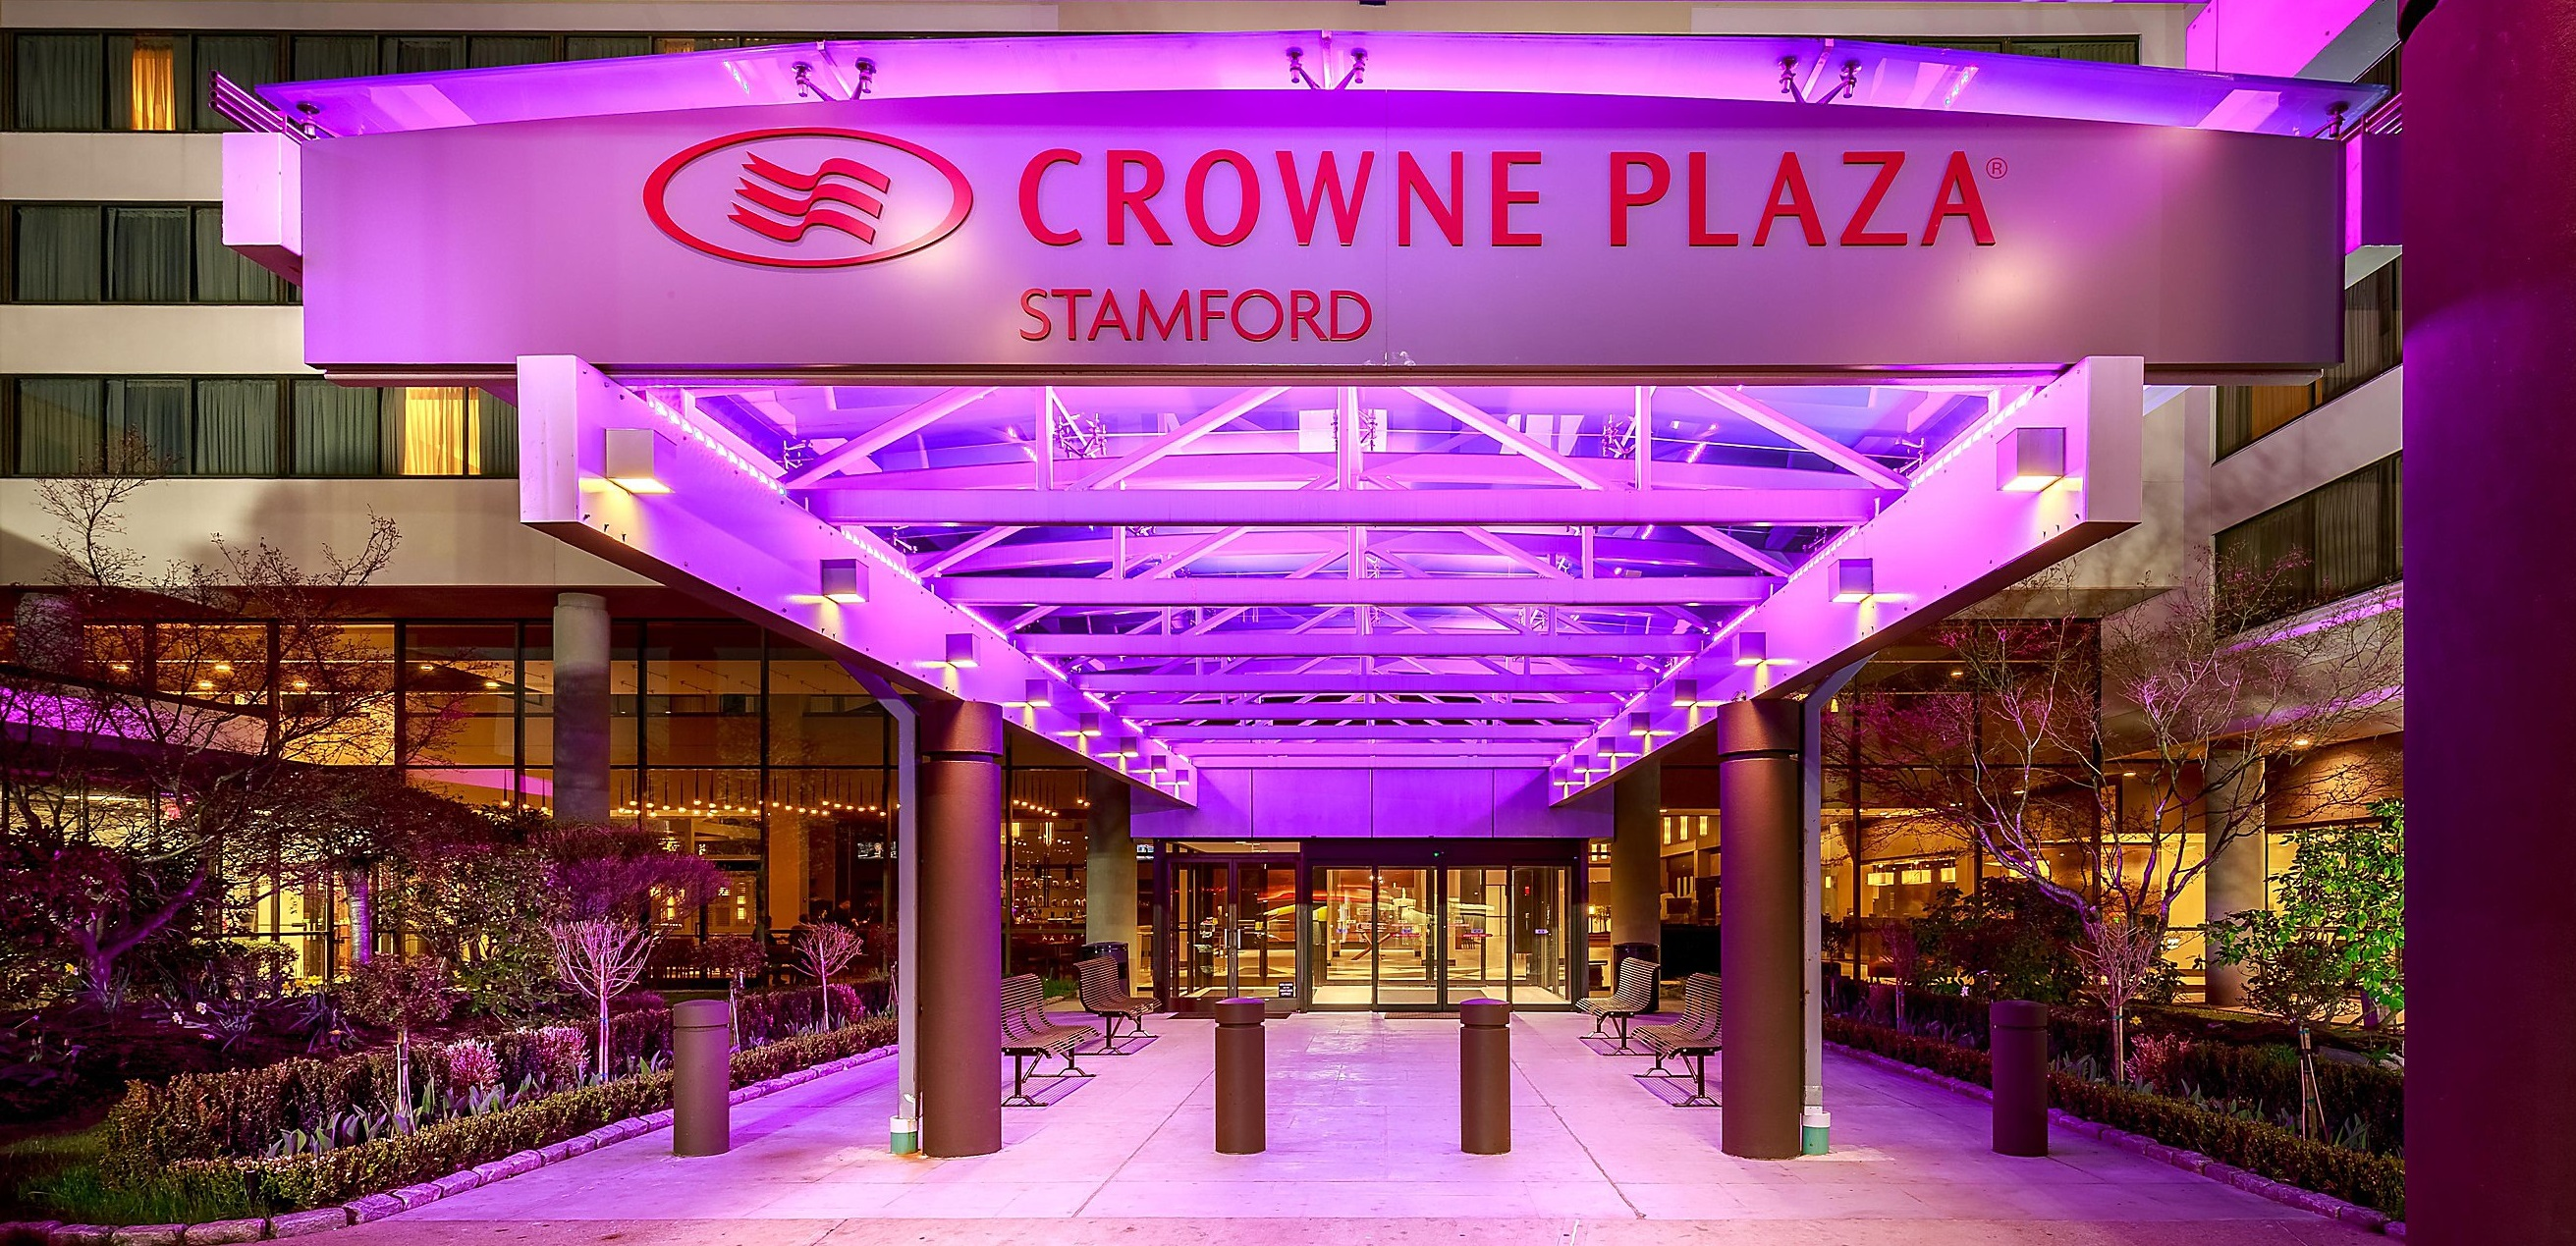 Crowne Plaza Stamford Now on PointBreaks And Bookable For